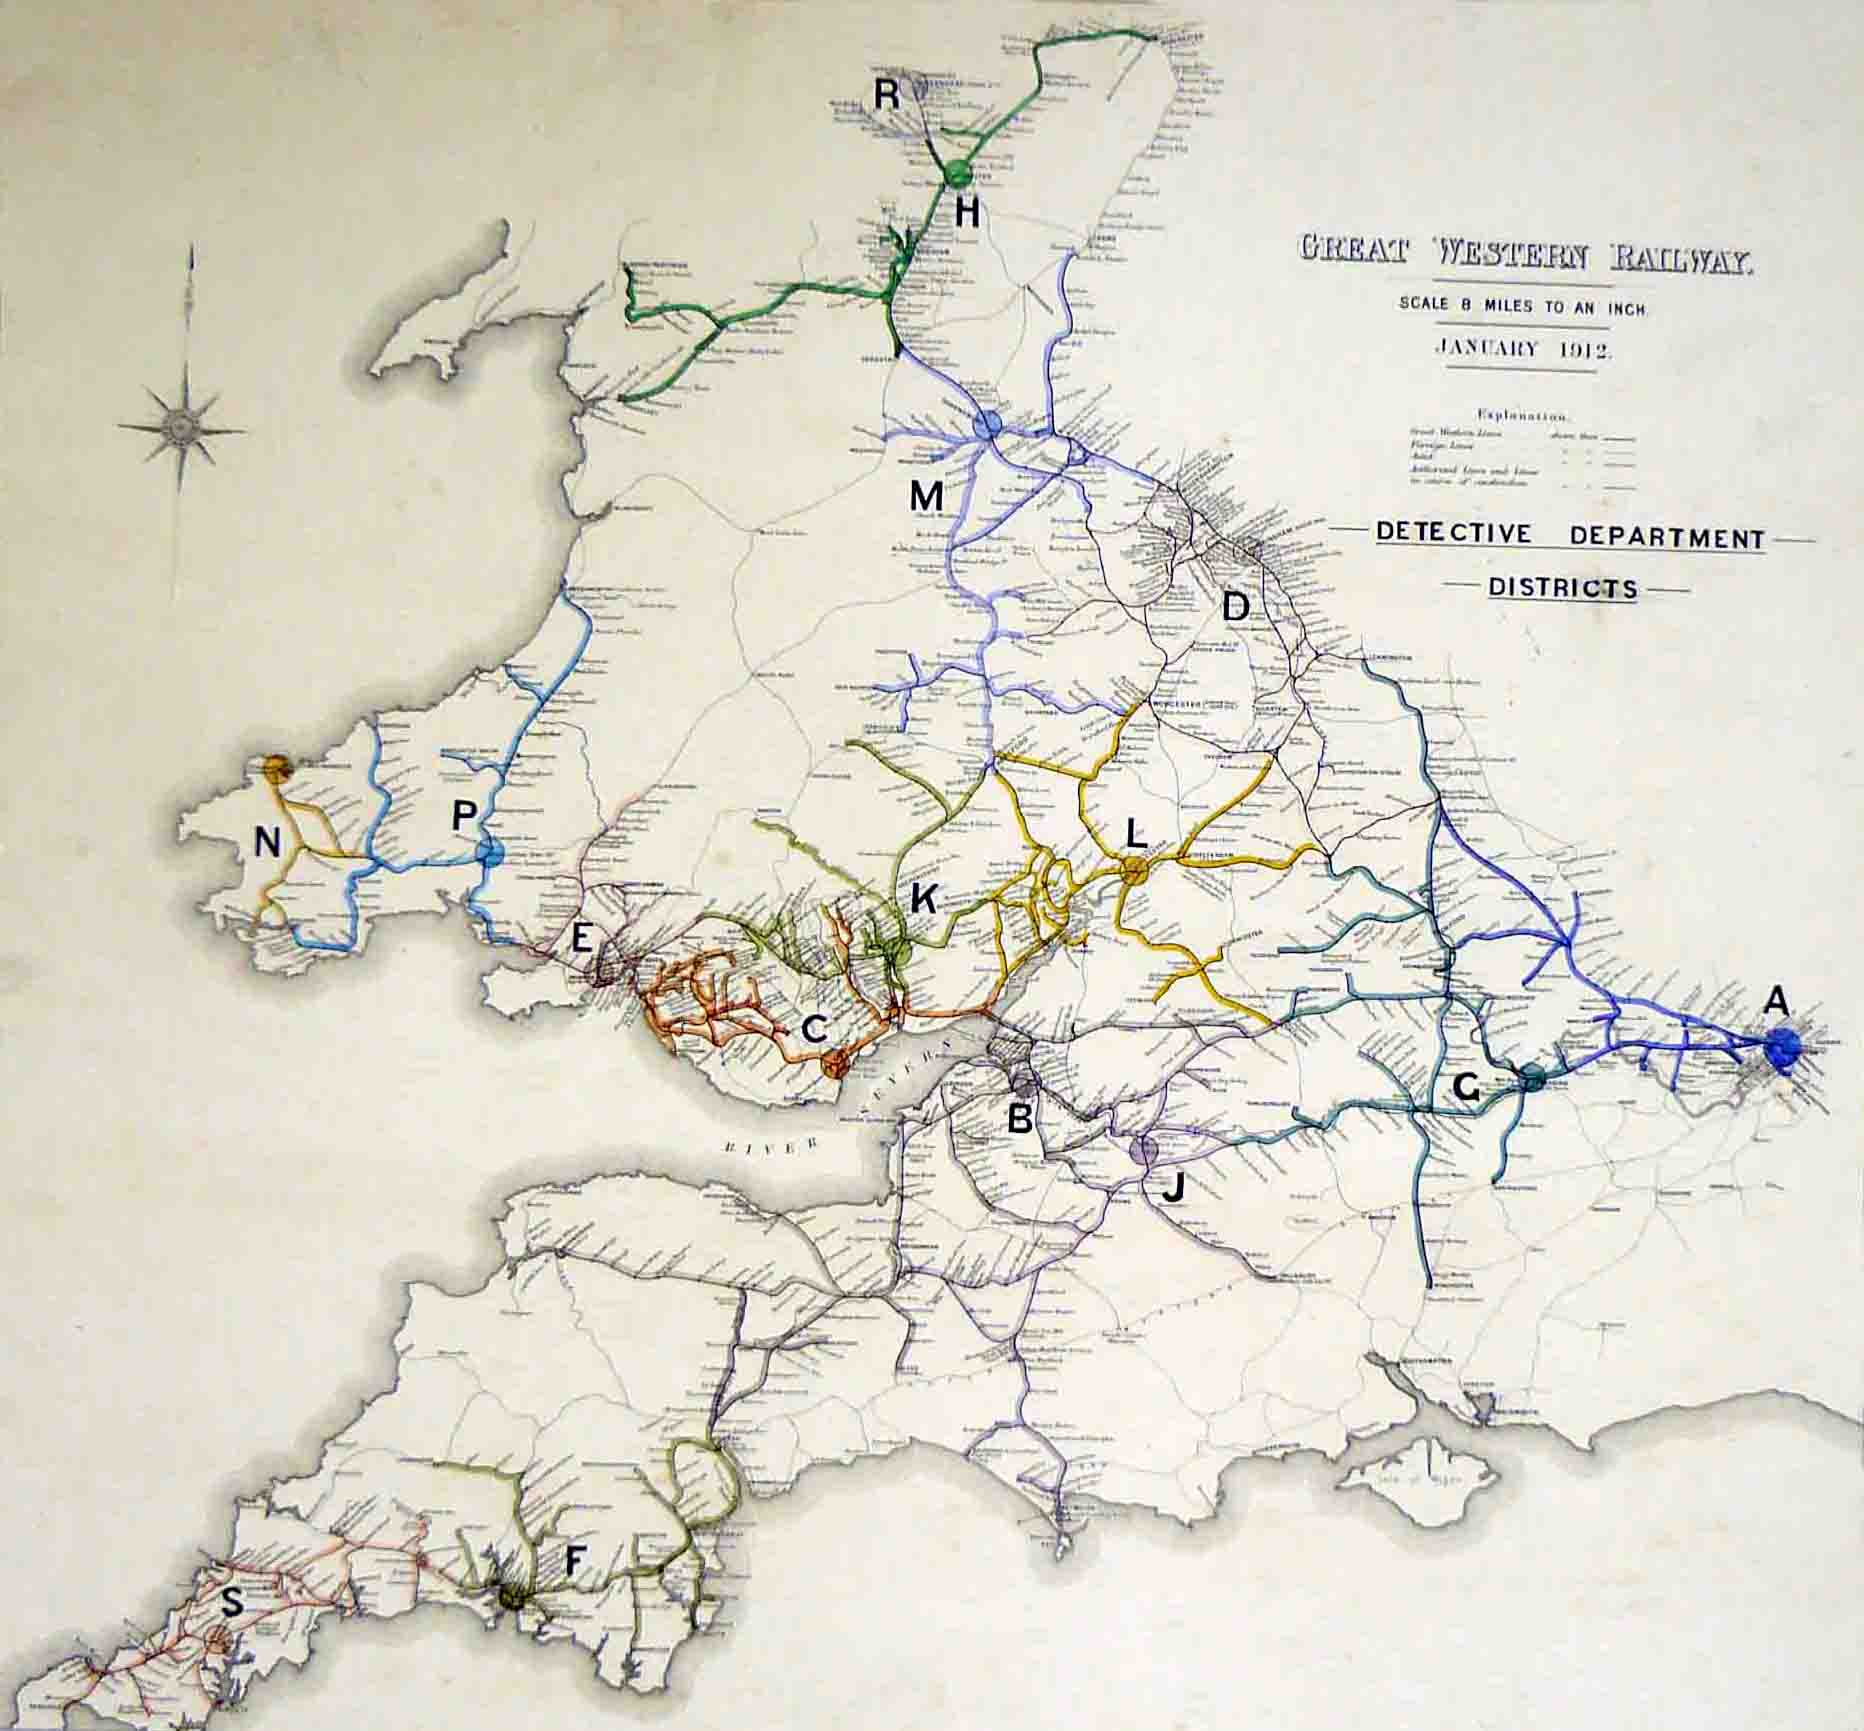 GWR Detective Department map